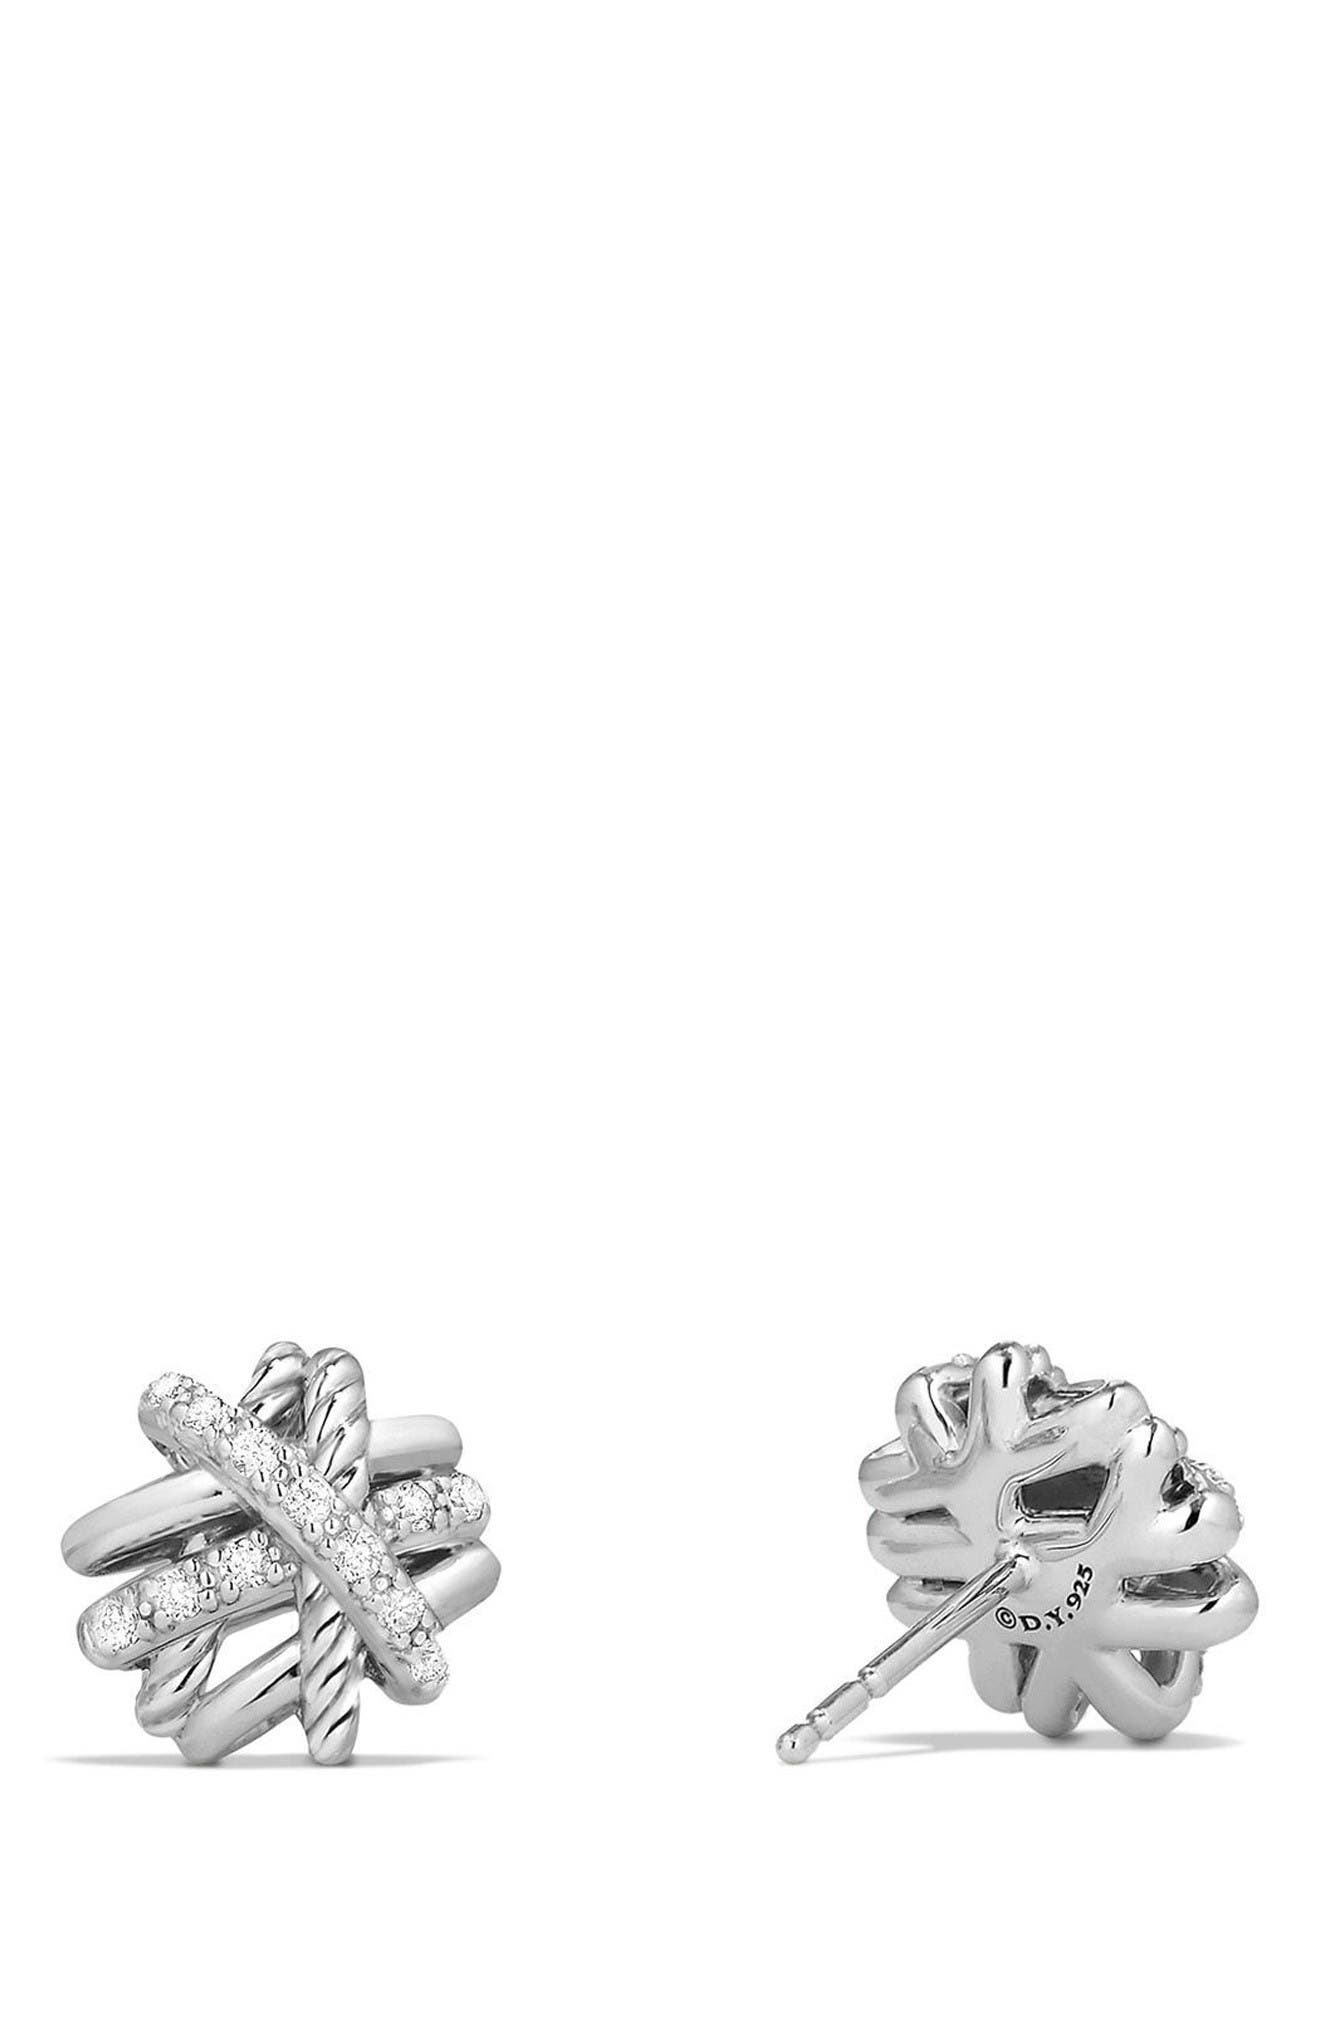 Crossover Stud Earrings with Diamonds,                             Alternate thumbnail 2, color,                             Silver/ Gold